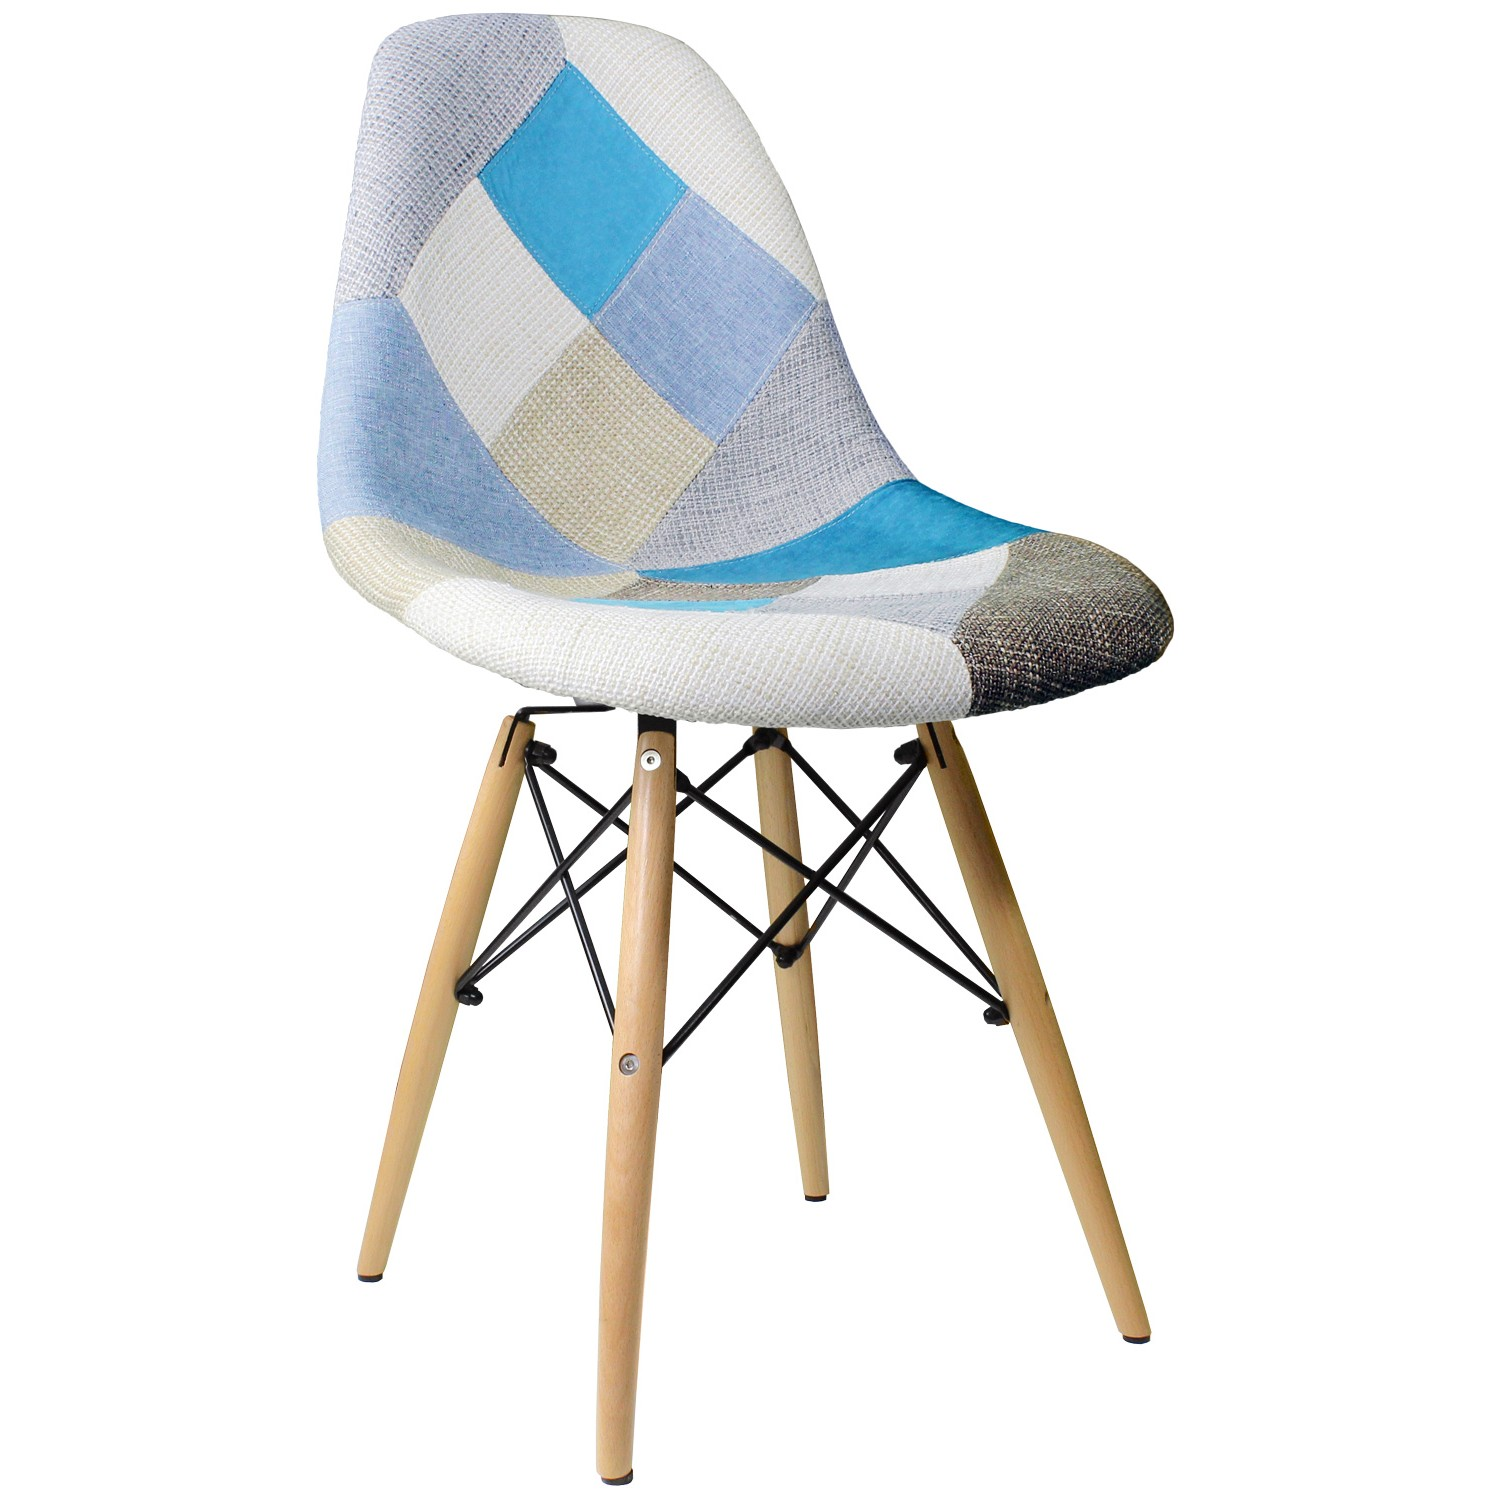 tub fabric accent chair patchwork cool modern office chairs upholstered mid century eames style